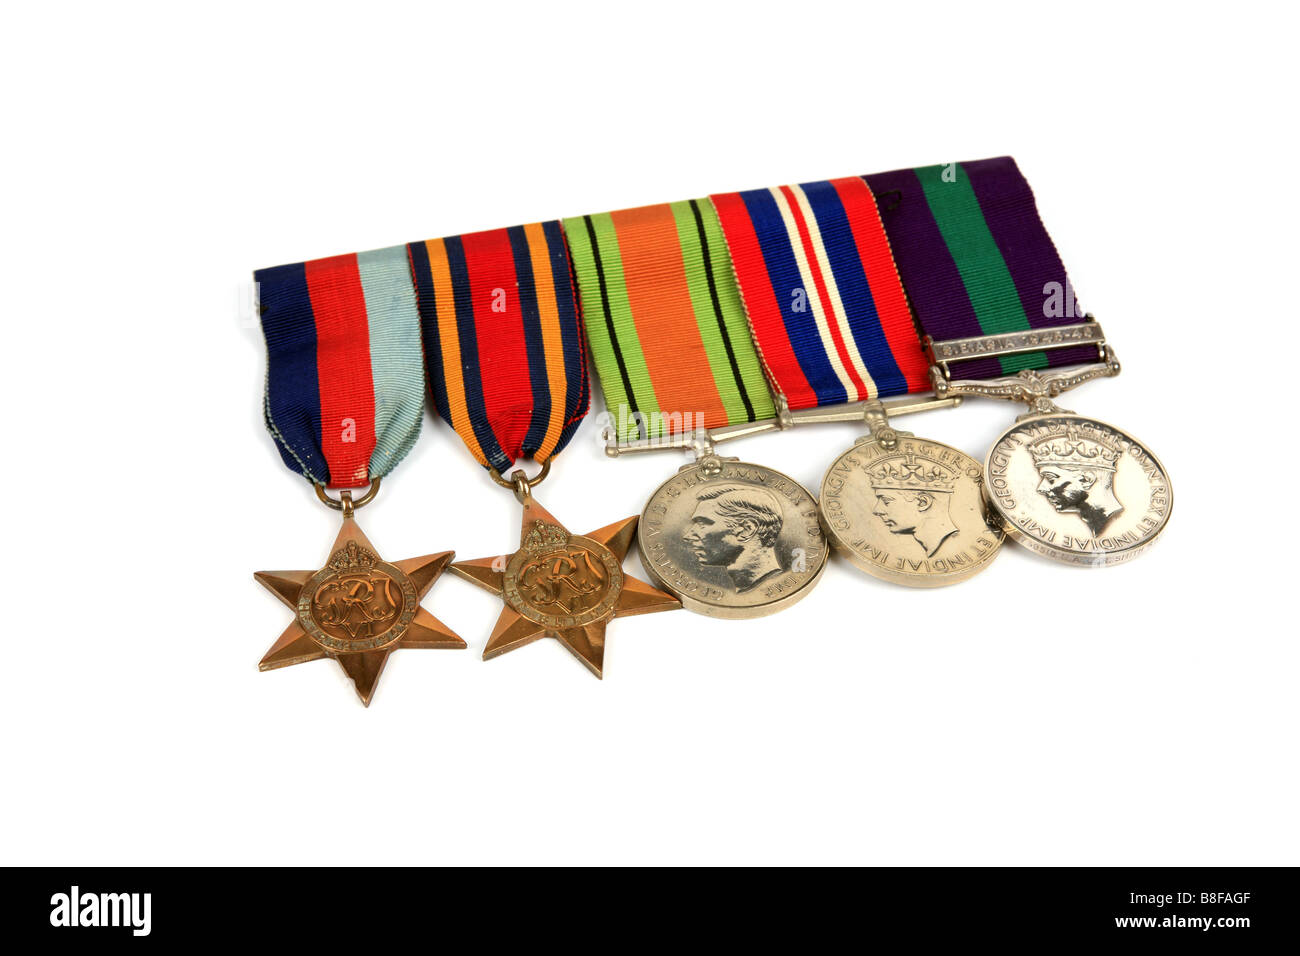 Group of British WW2 Medals against a white background - Stock Image